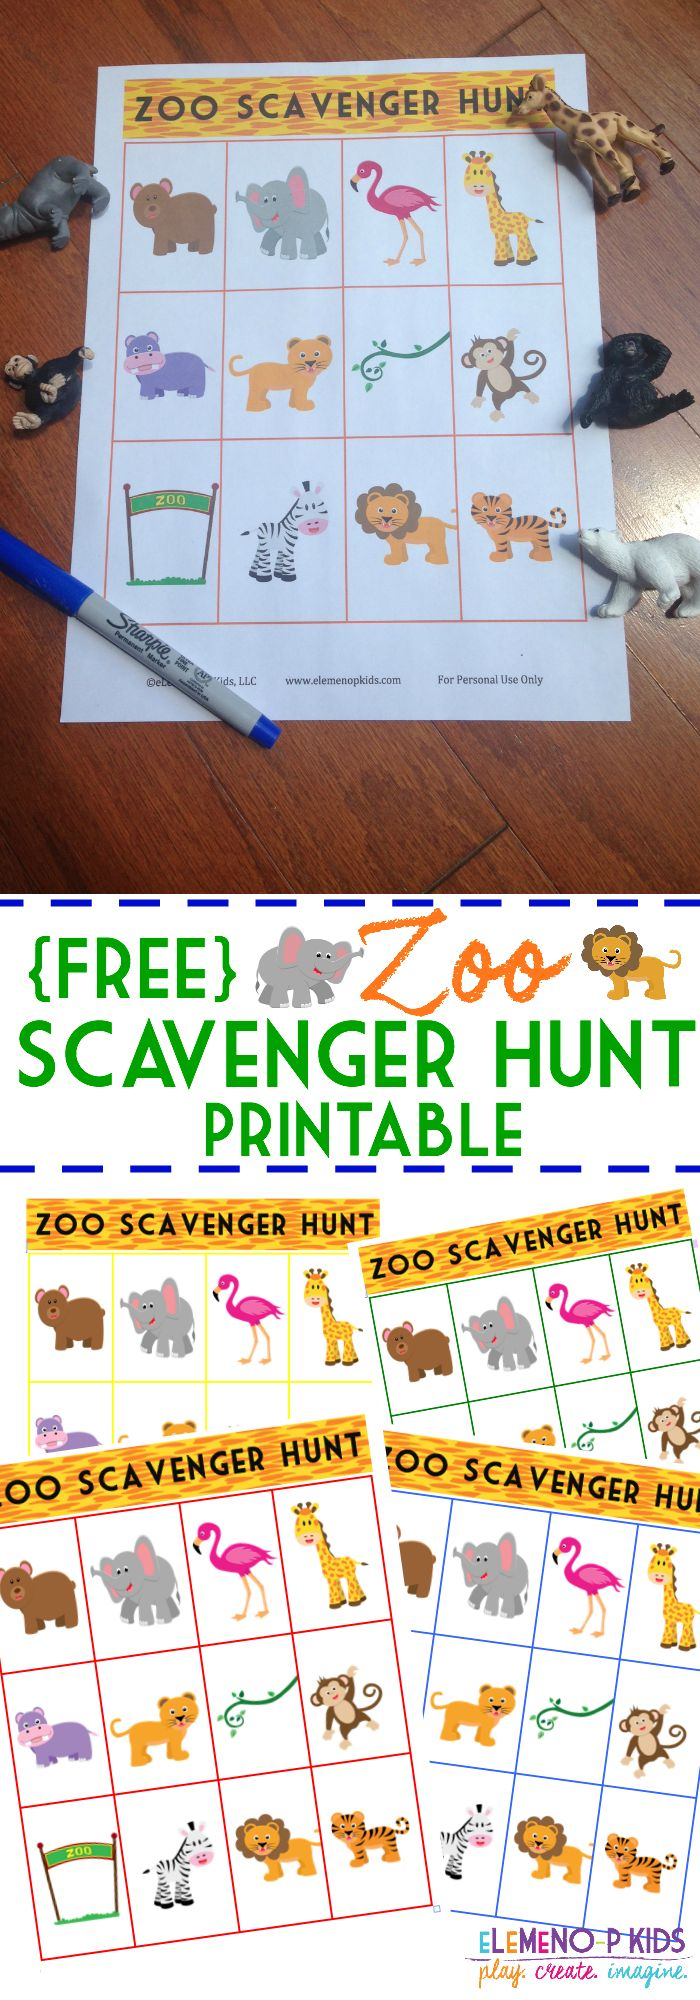 FREE Zoo Scavenger Hunt Printable!